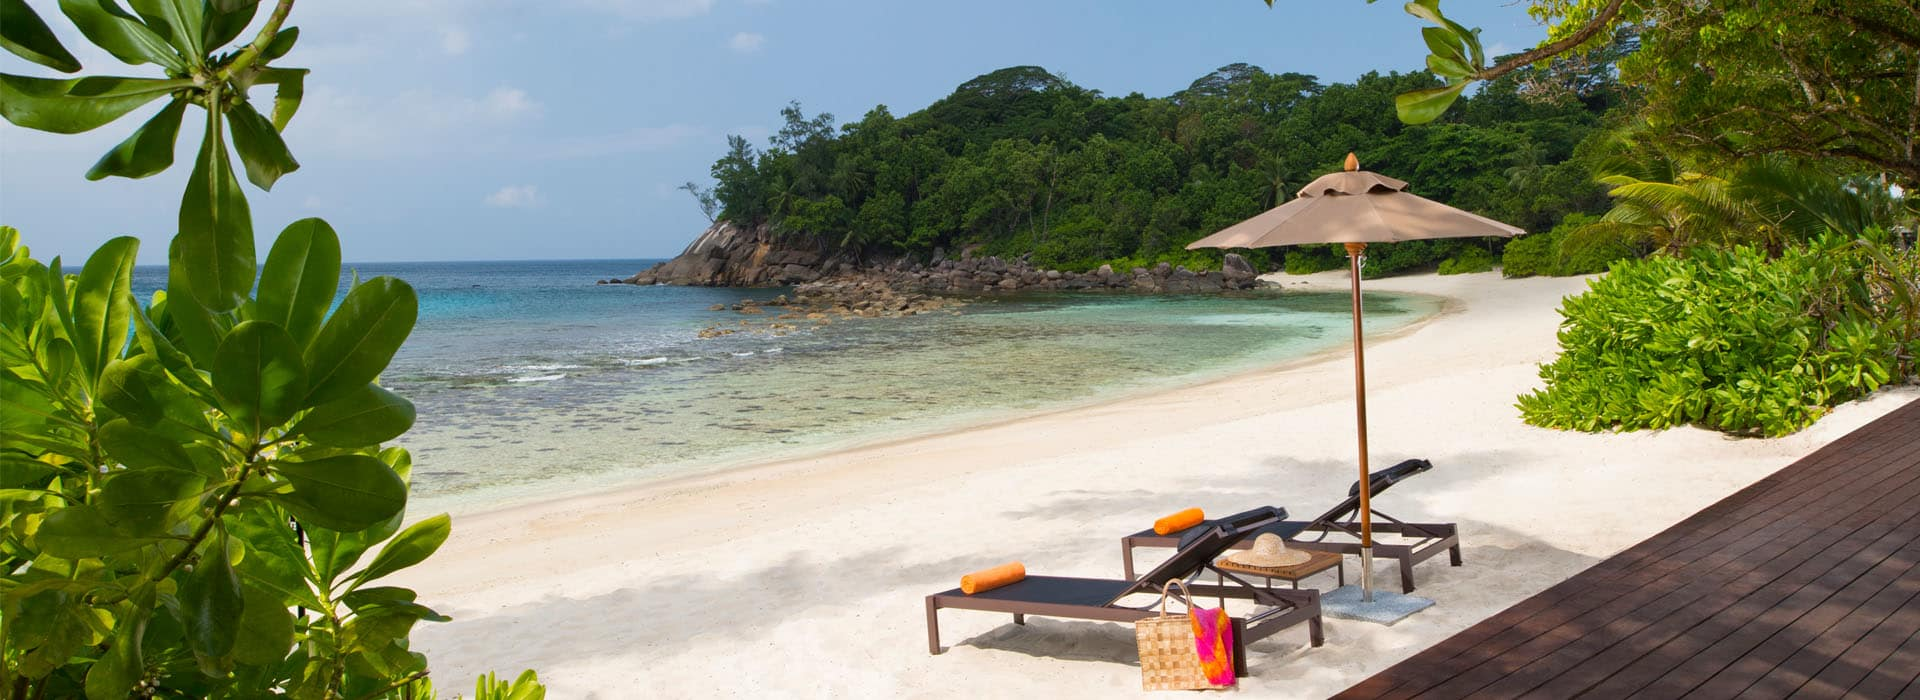 AVANI Seychelles private beach with sun beds